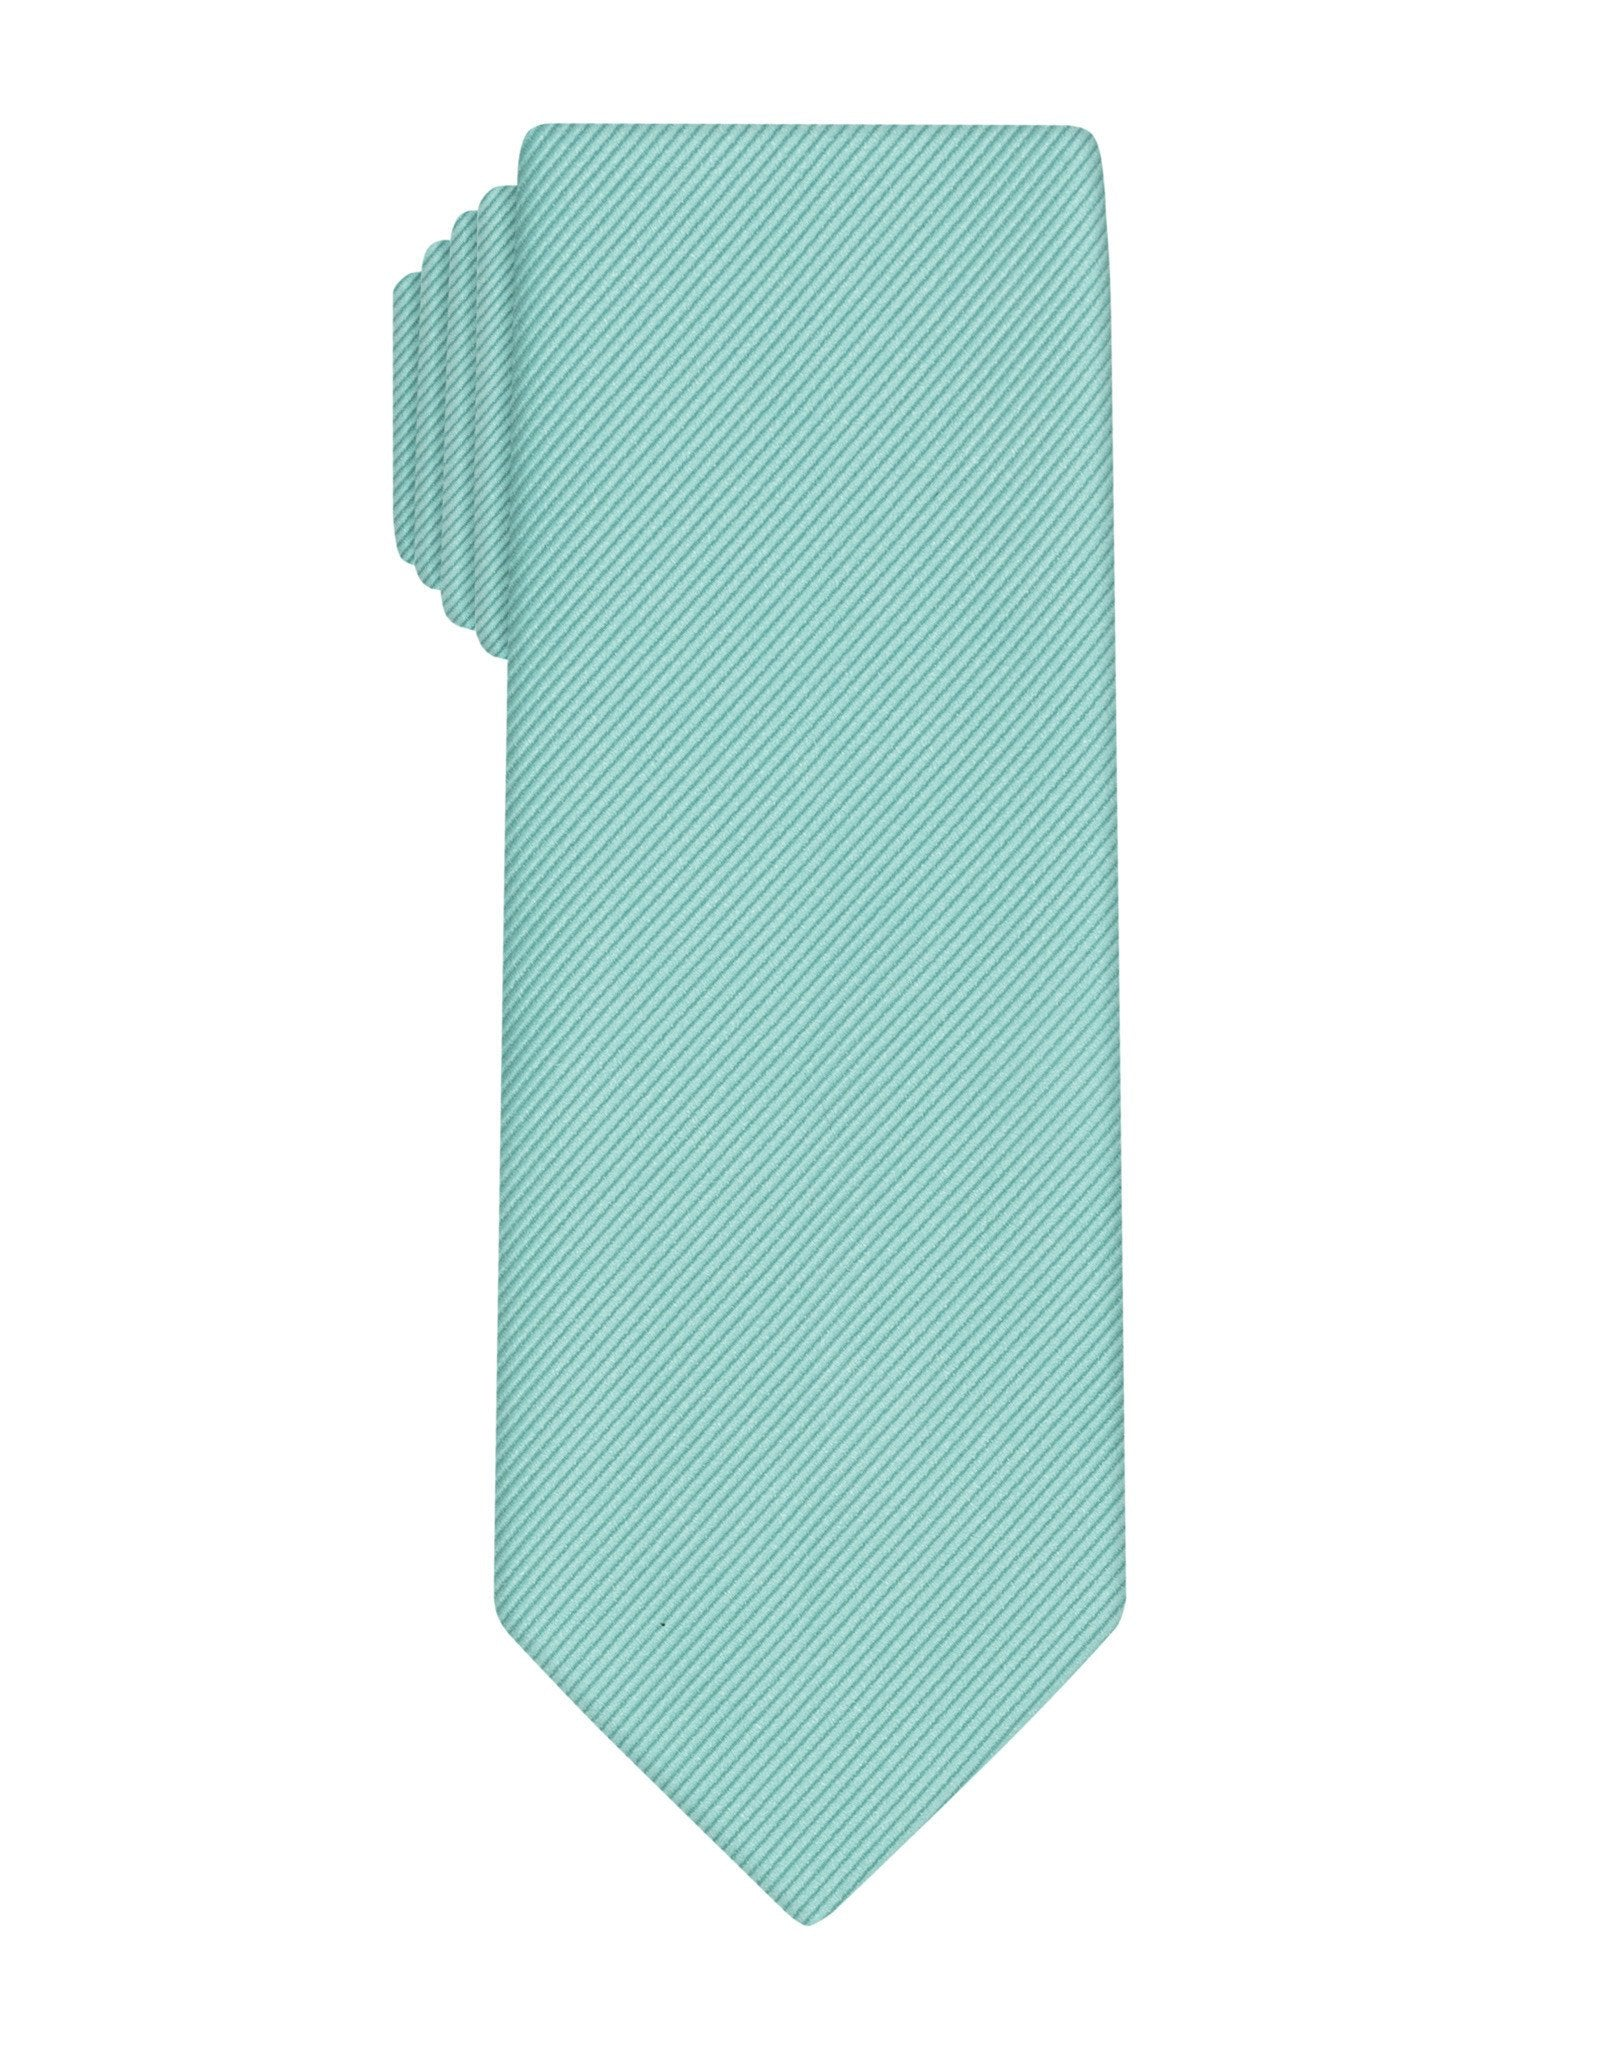 Mint Green Solid Heavy Twill Tie